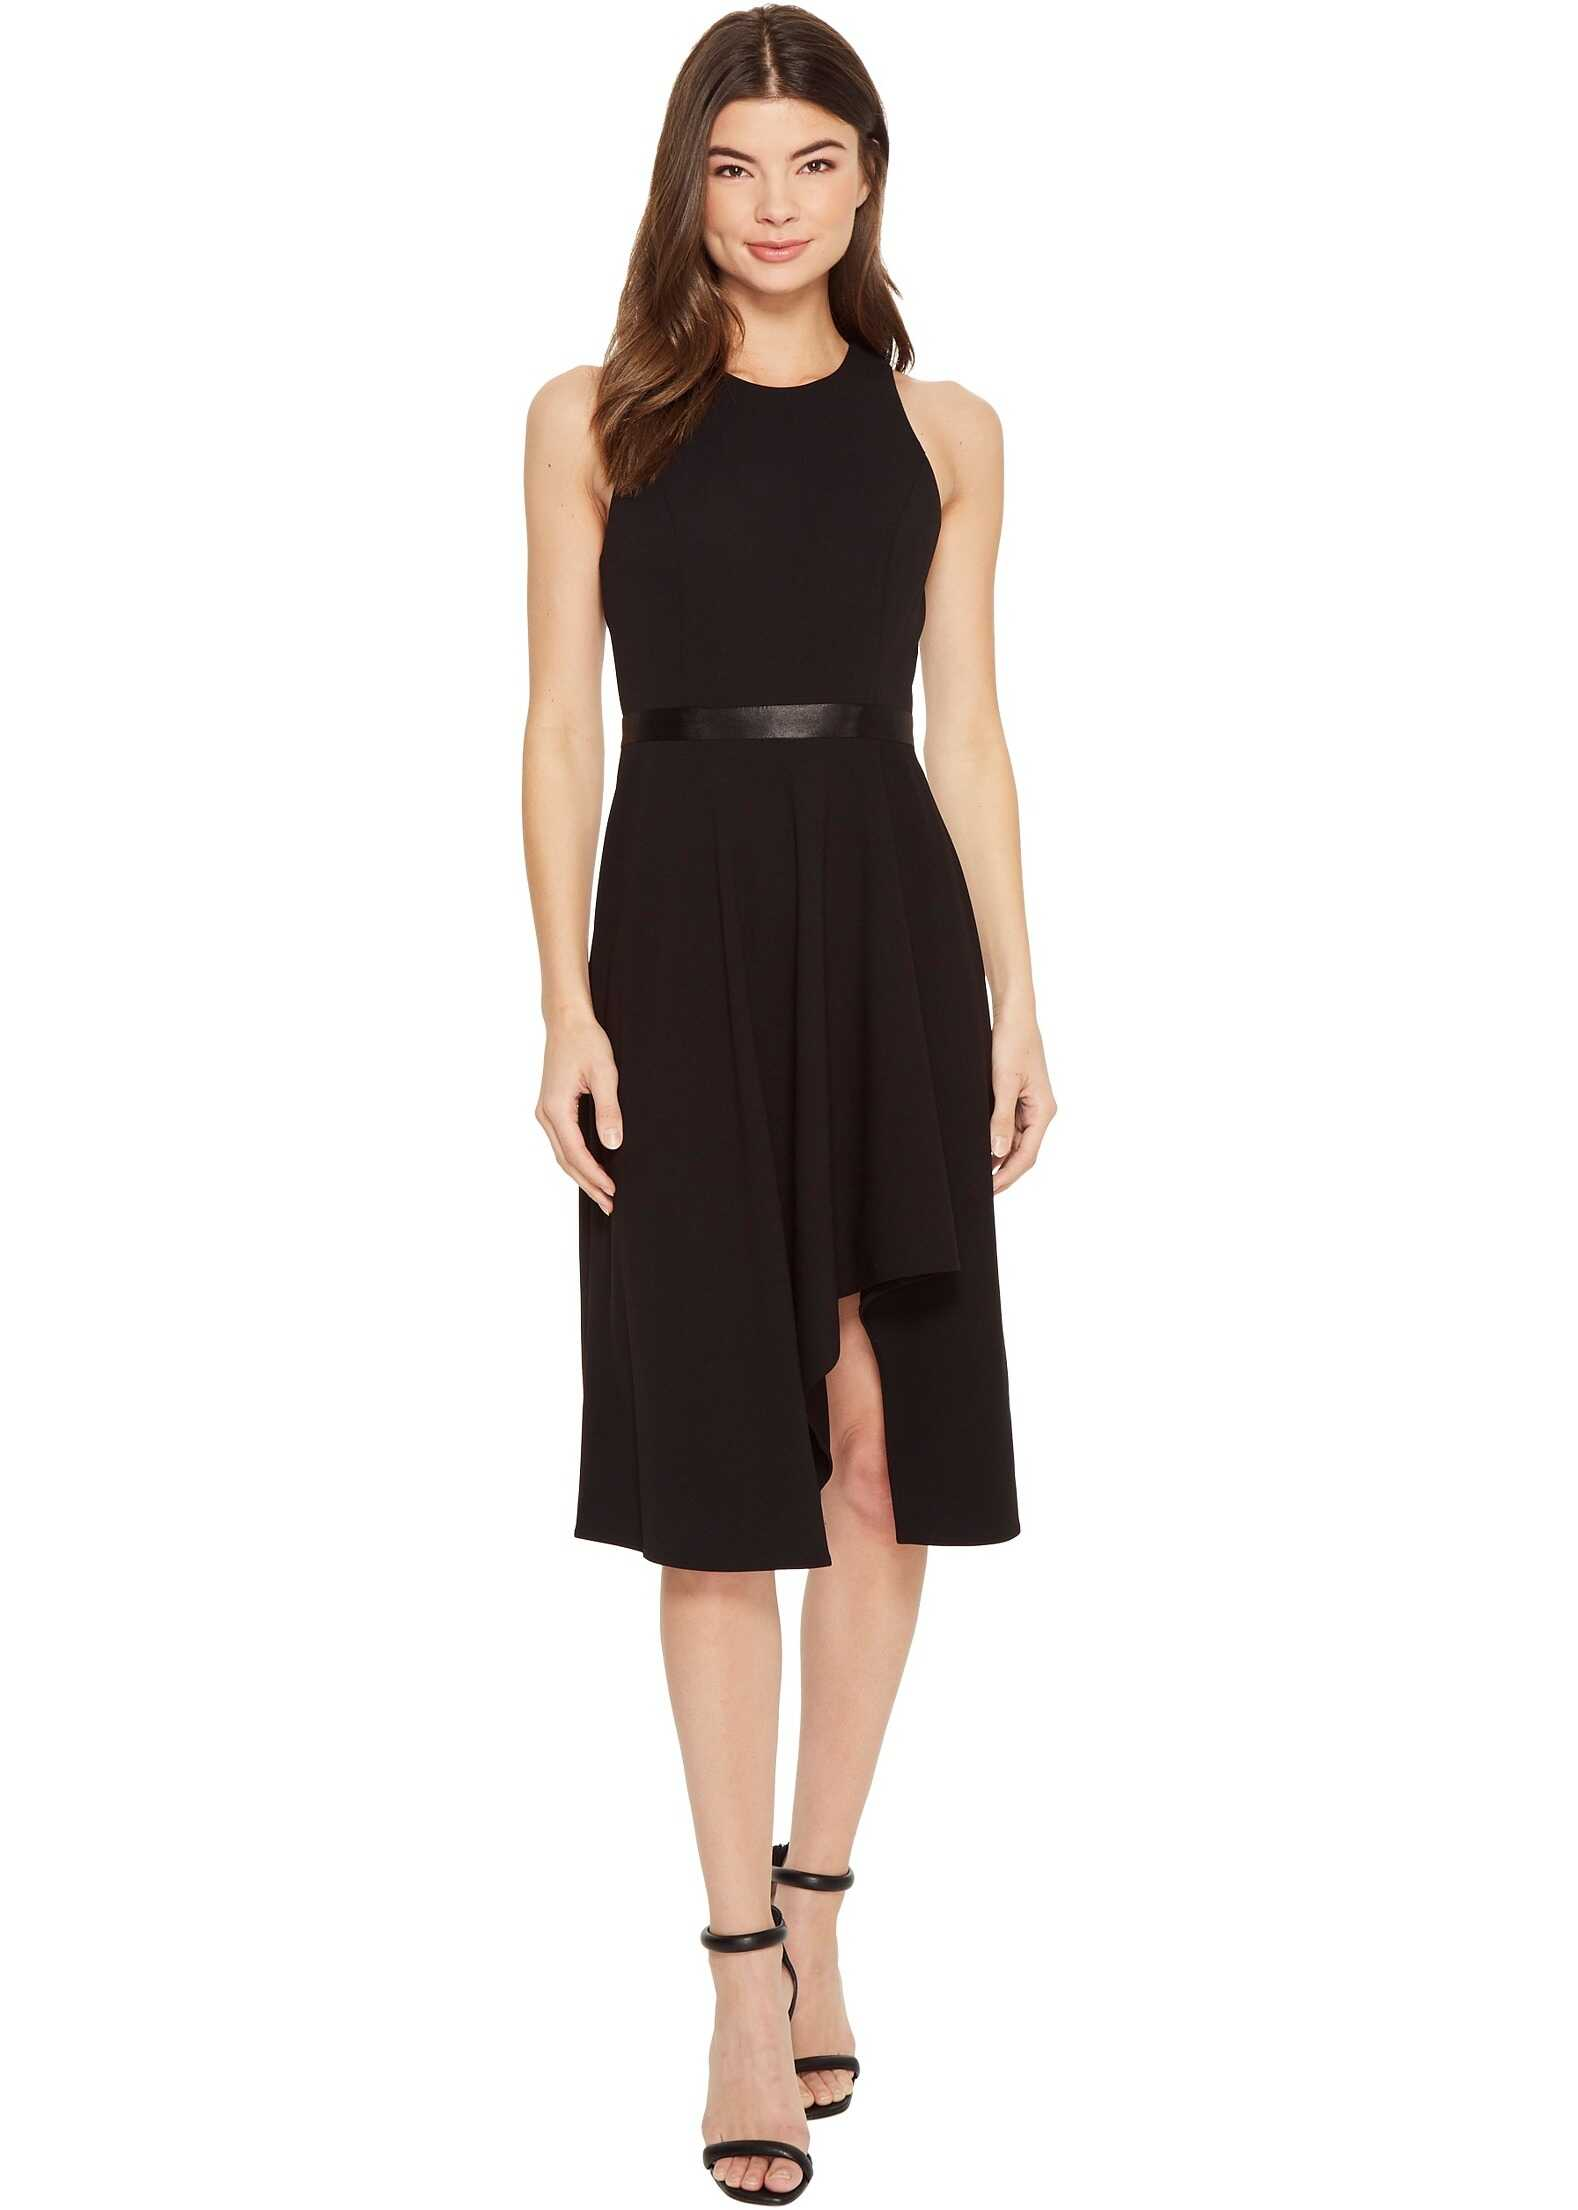 Calvin Klein High-Low with Contrast Lining CD8C11KV Black/White